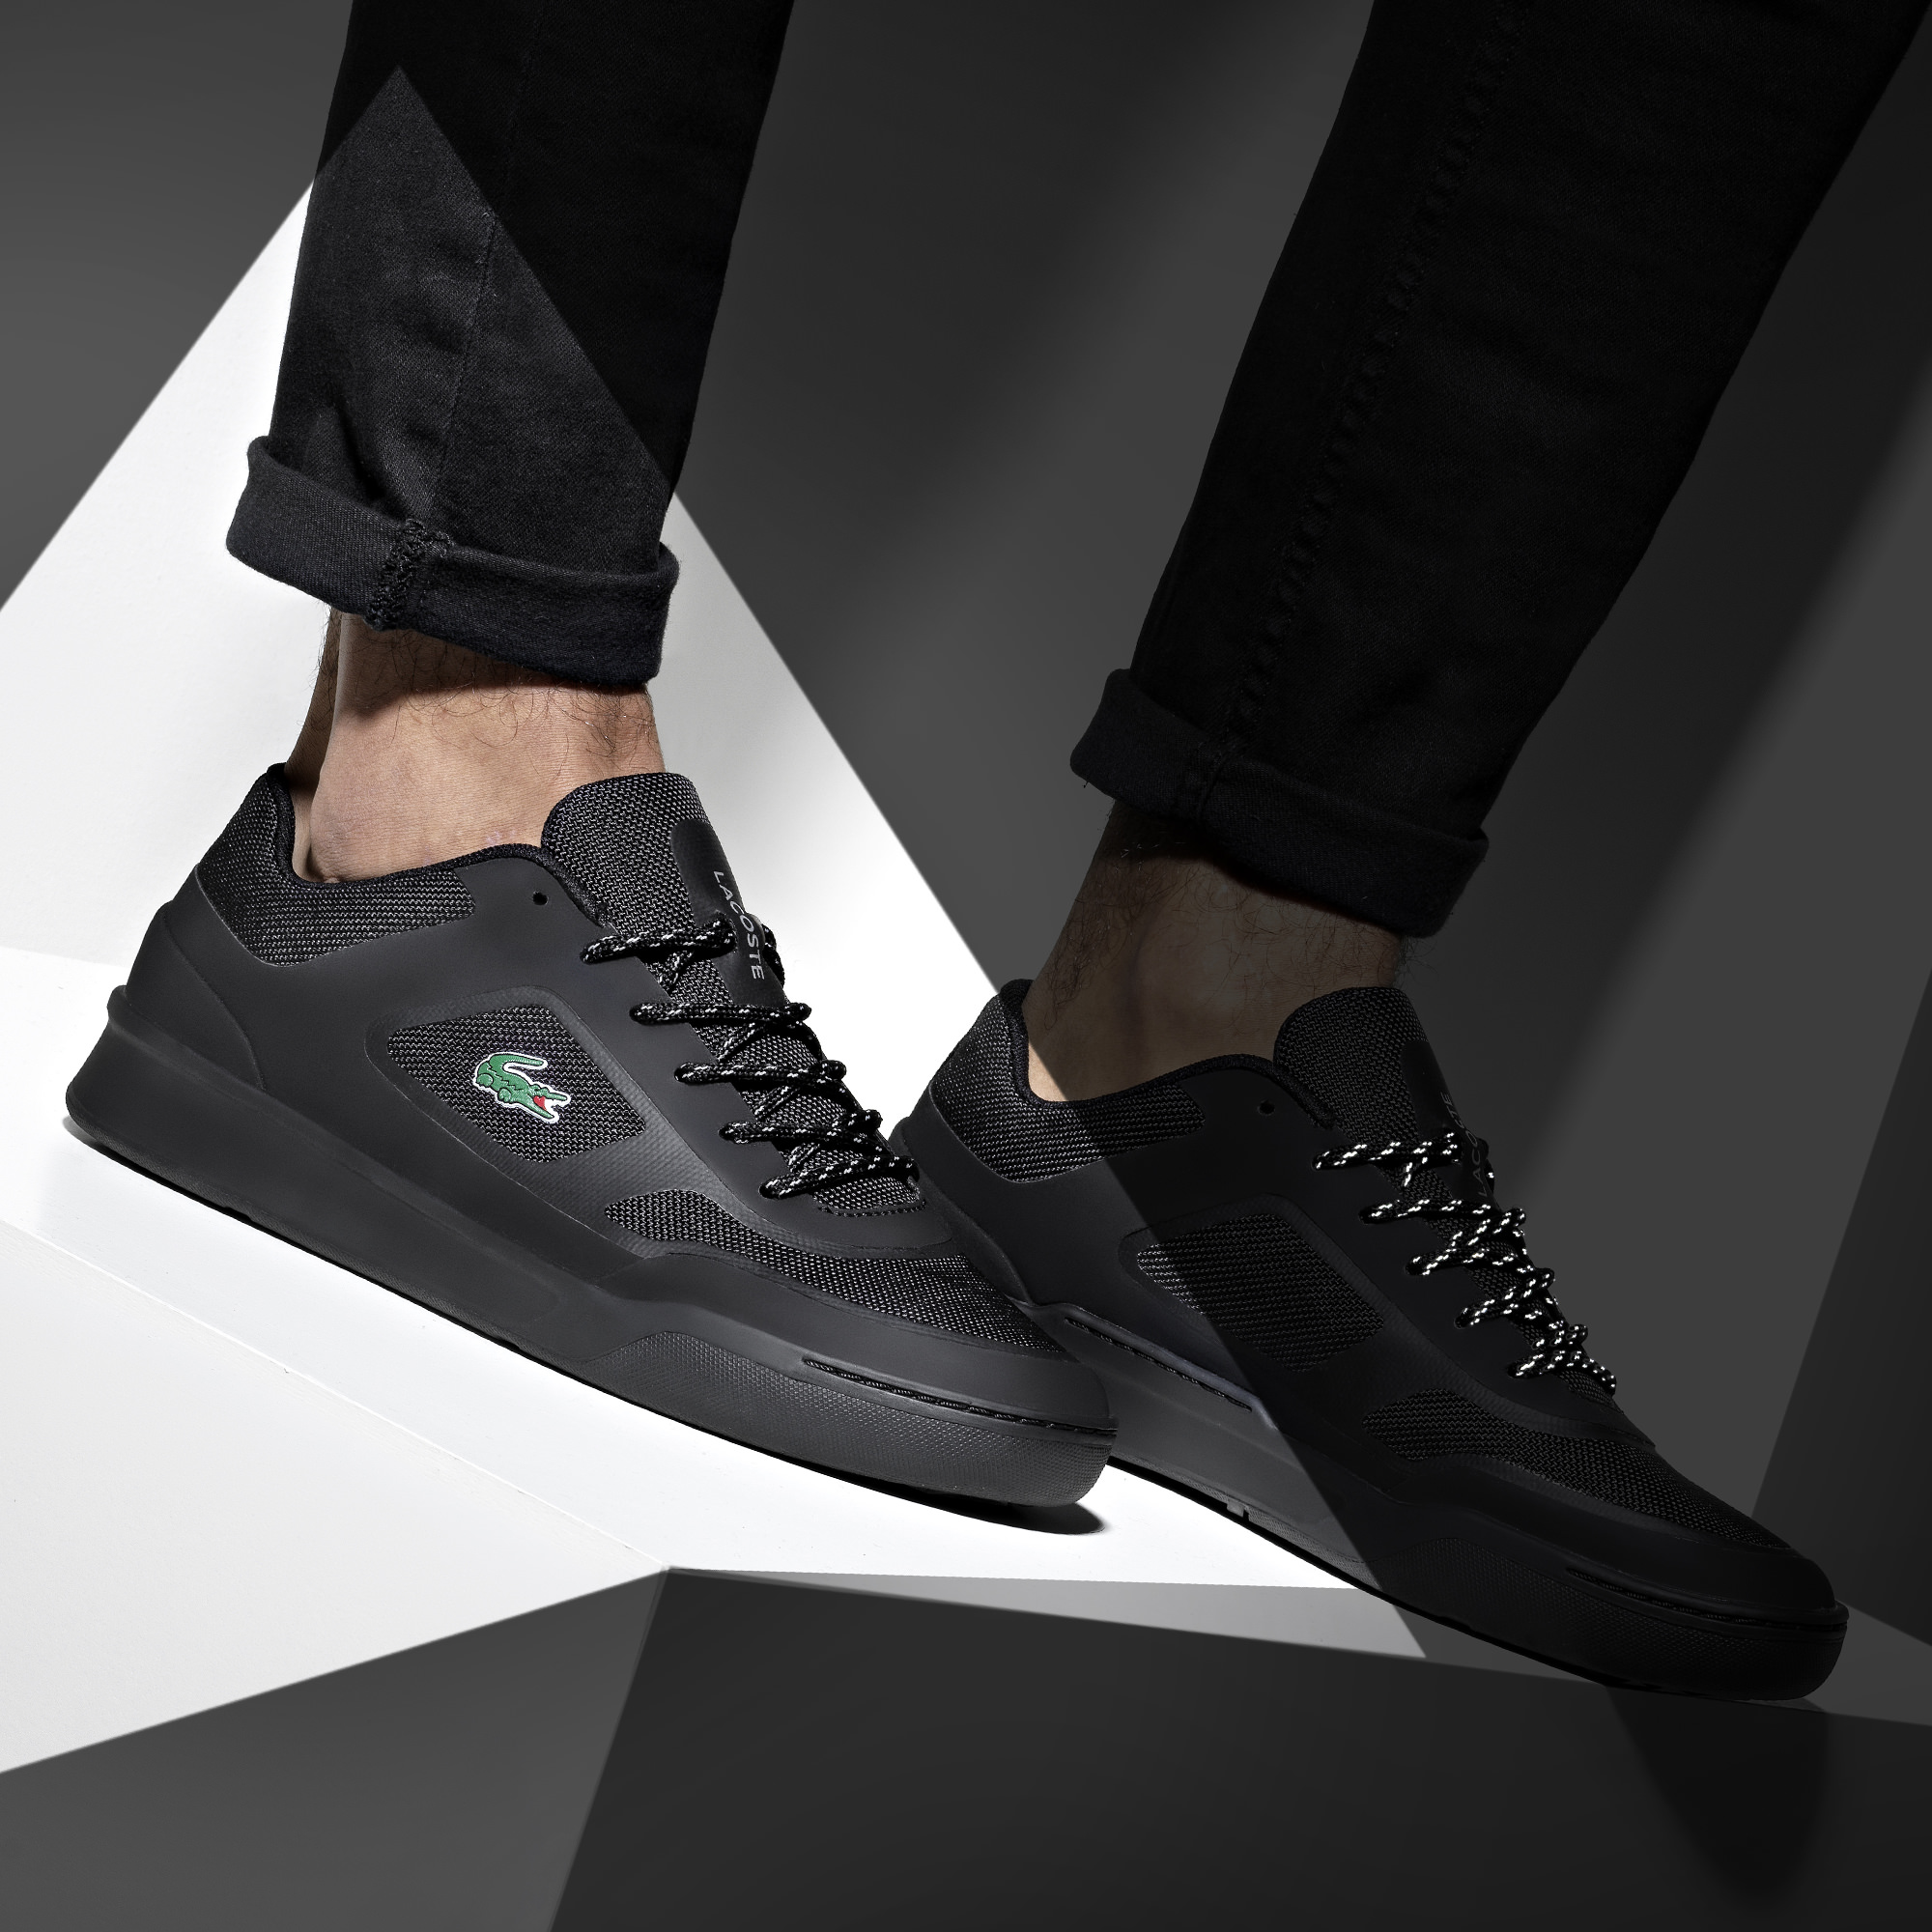 creme-creative-lacoste-reflective-pack-6.jpg